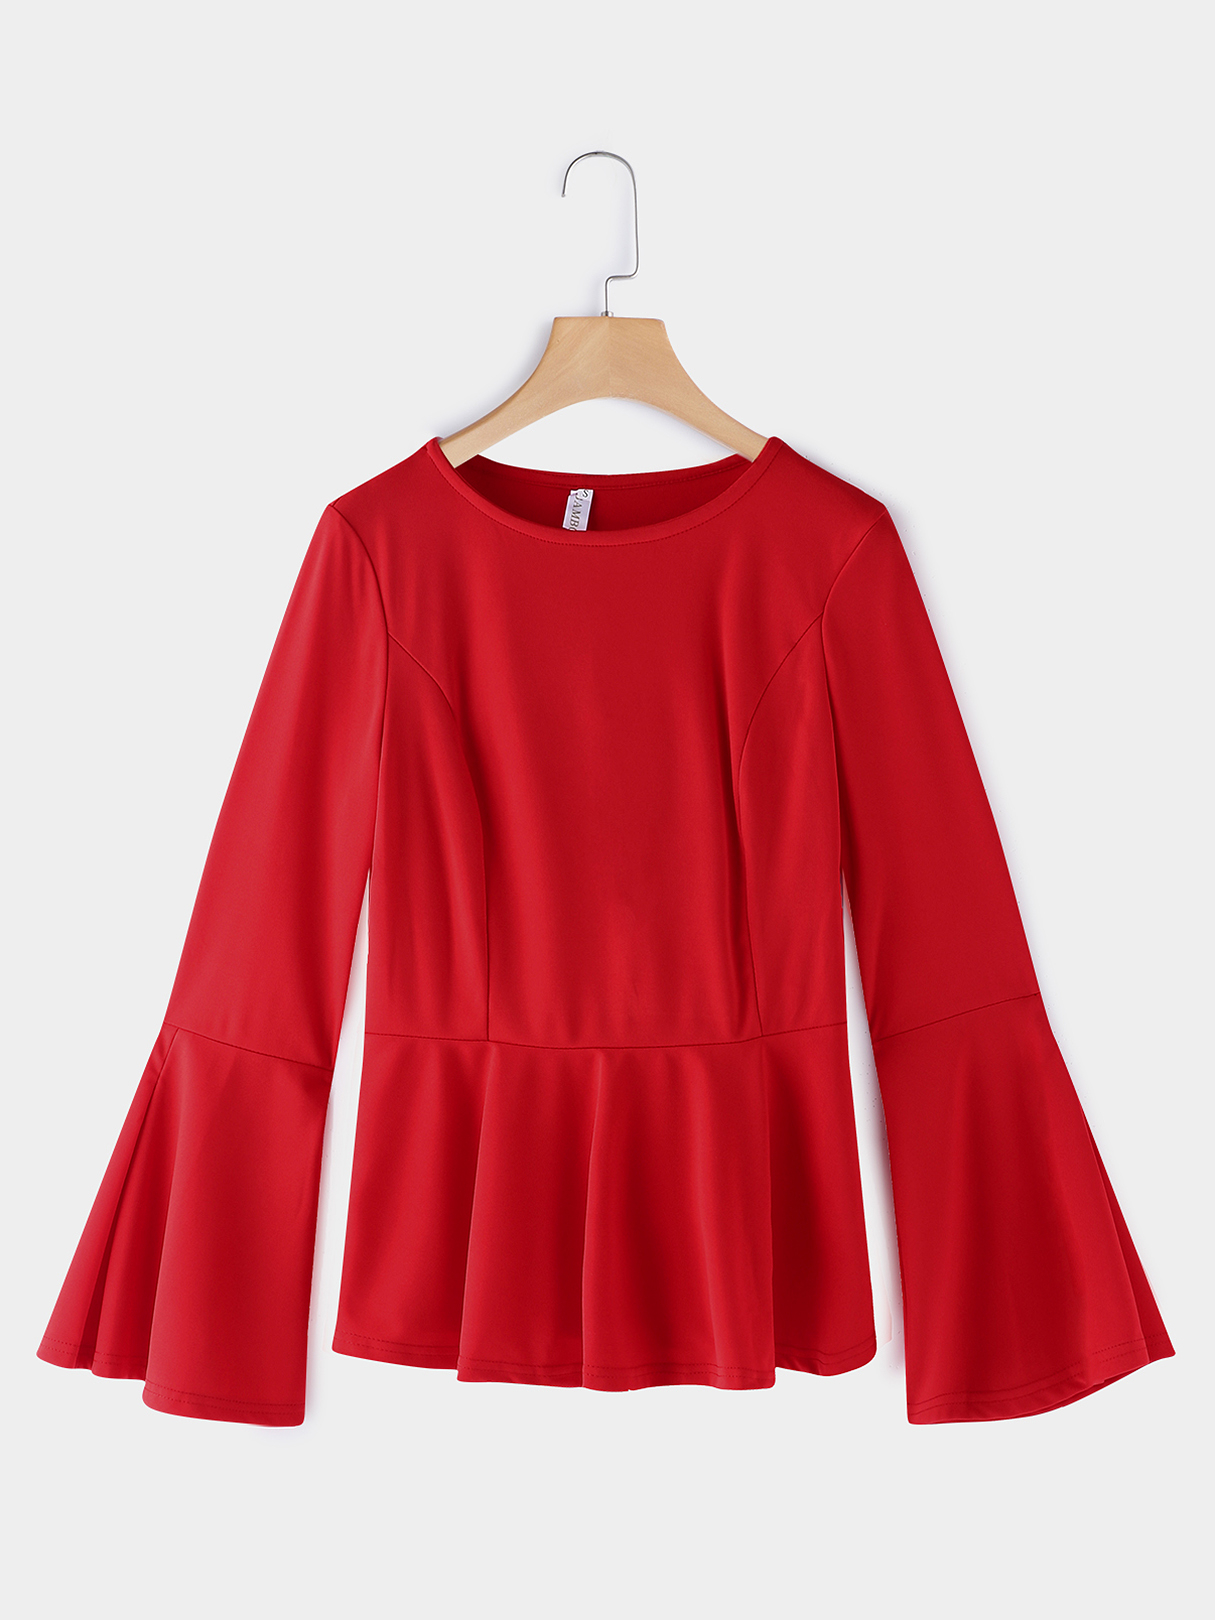 Red Plain Crew Neck Flared Long Sleeves Flounced Hem T-shirt black splited in the back plain round neck flared sleeves blouse